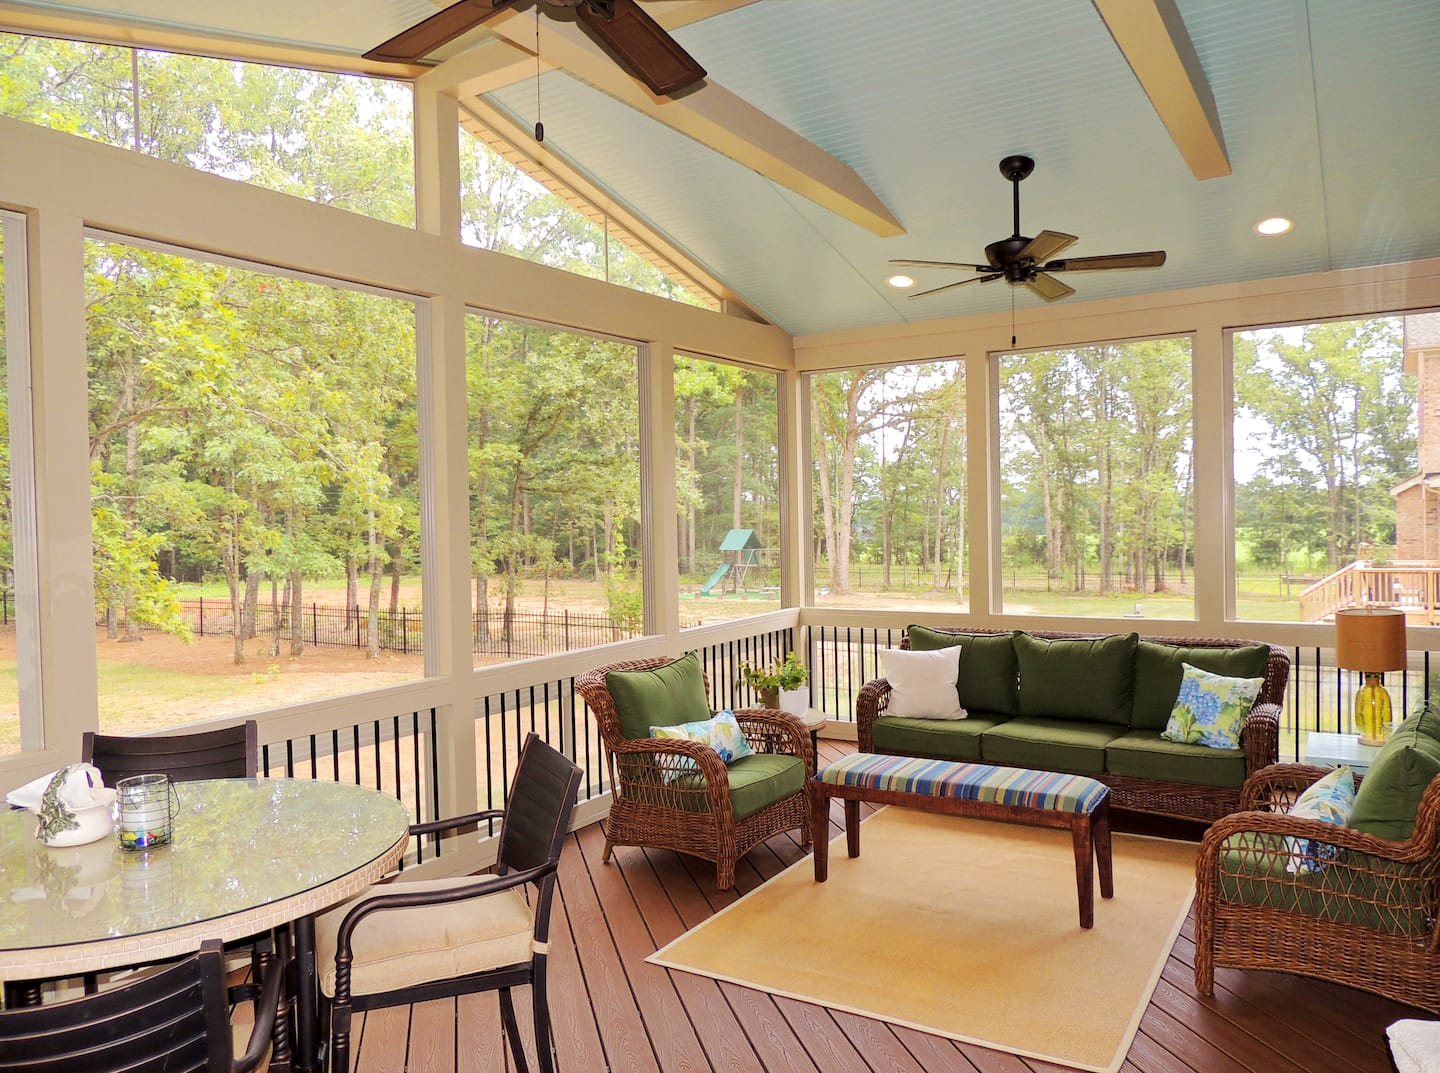 Choosing Between a Sunroom or Enclosed Porch